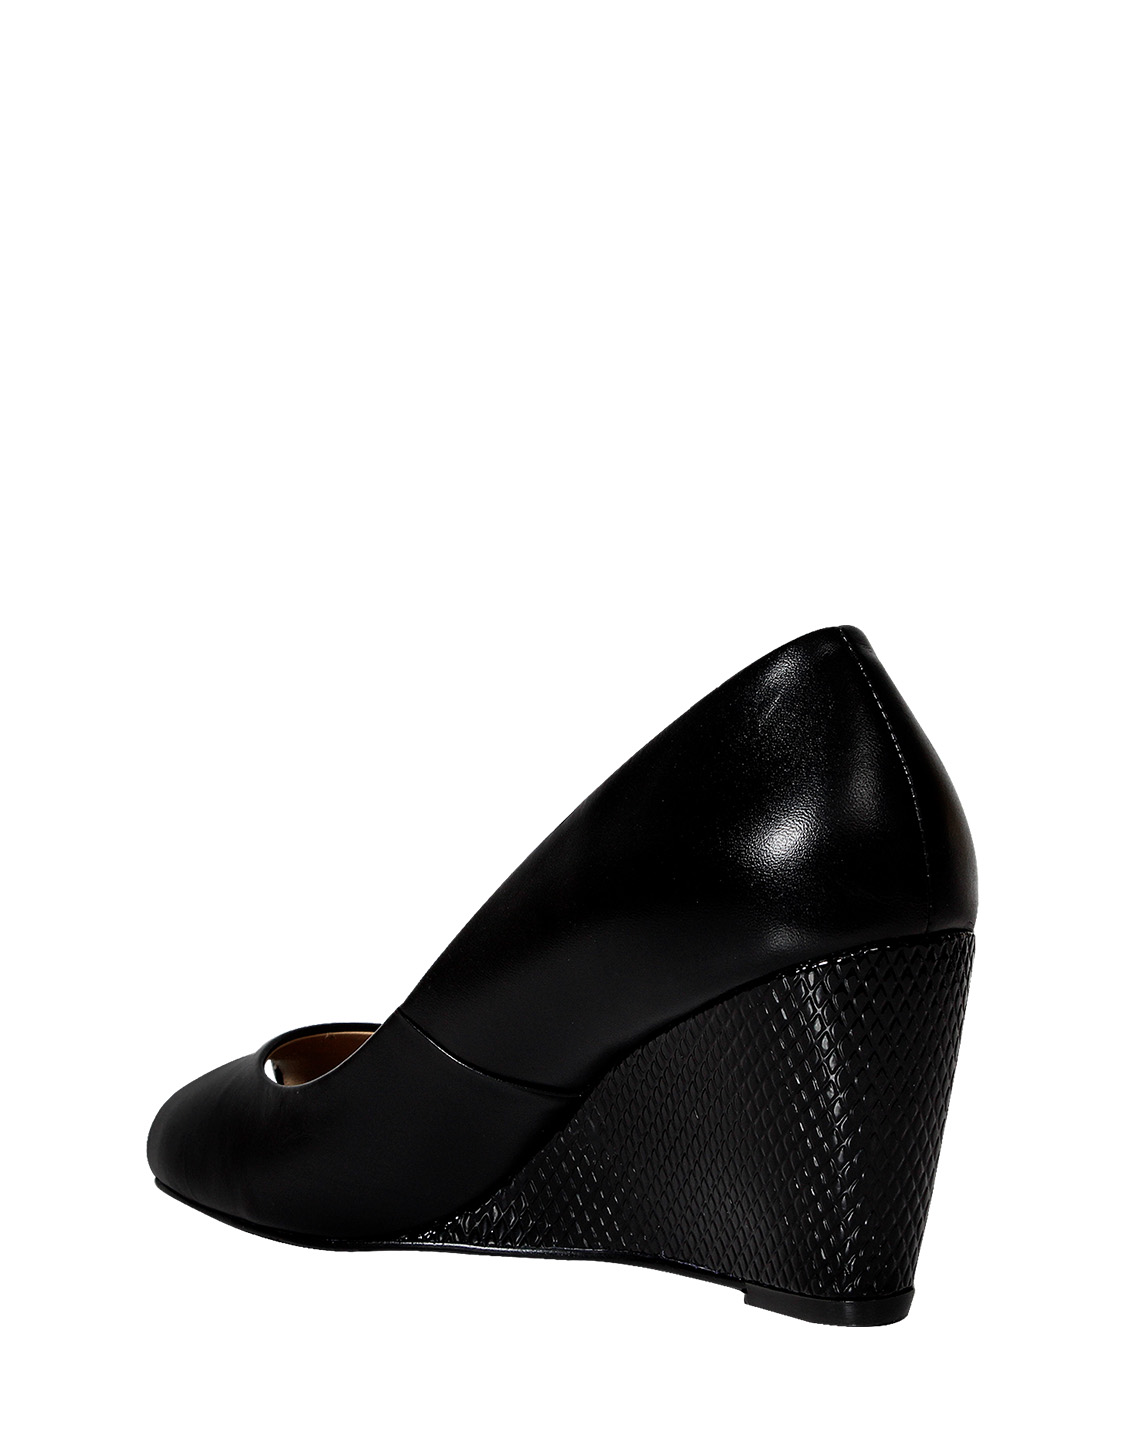 Calzado Peep Toe FRP-7709 Color Negro